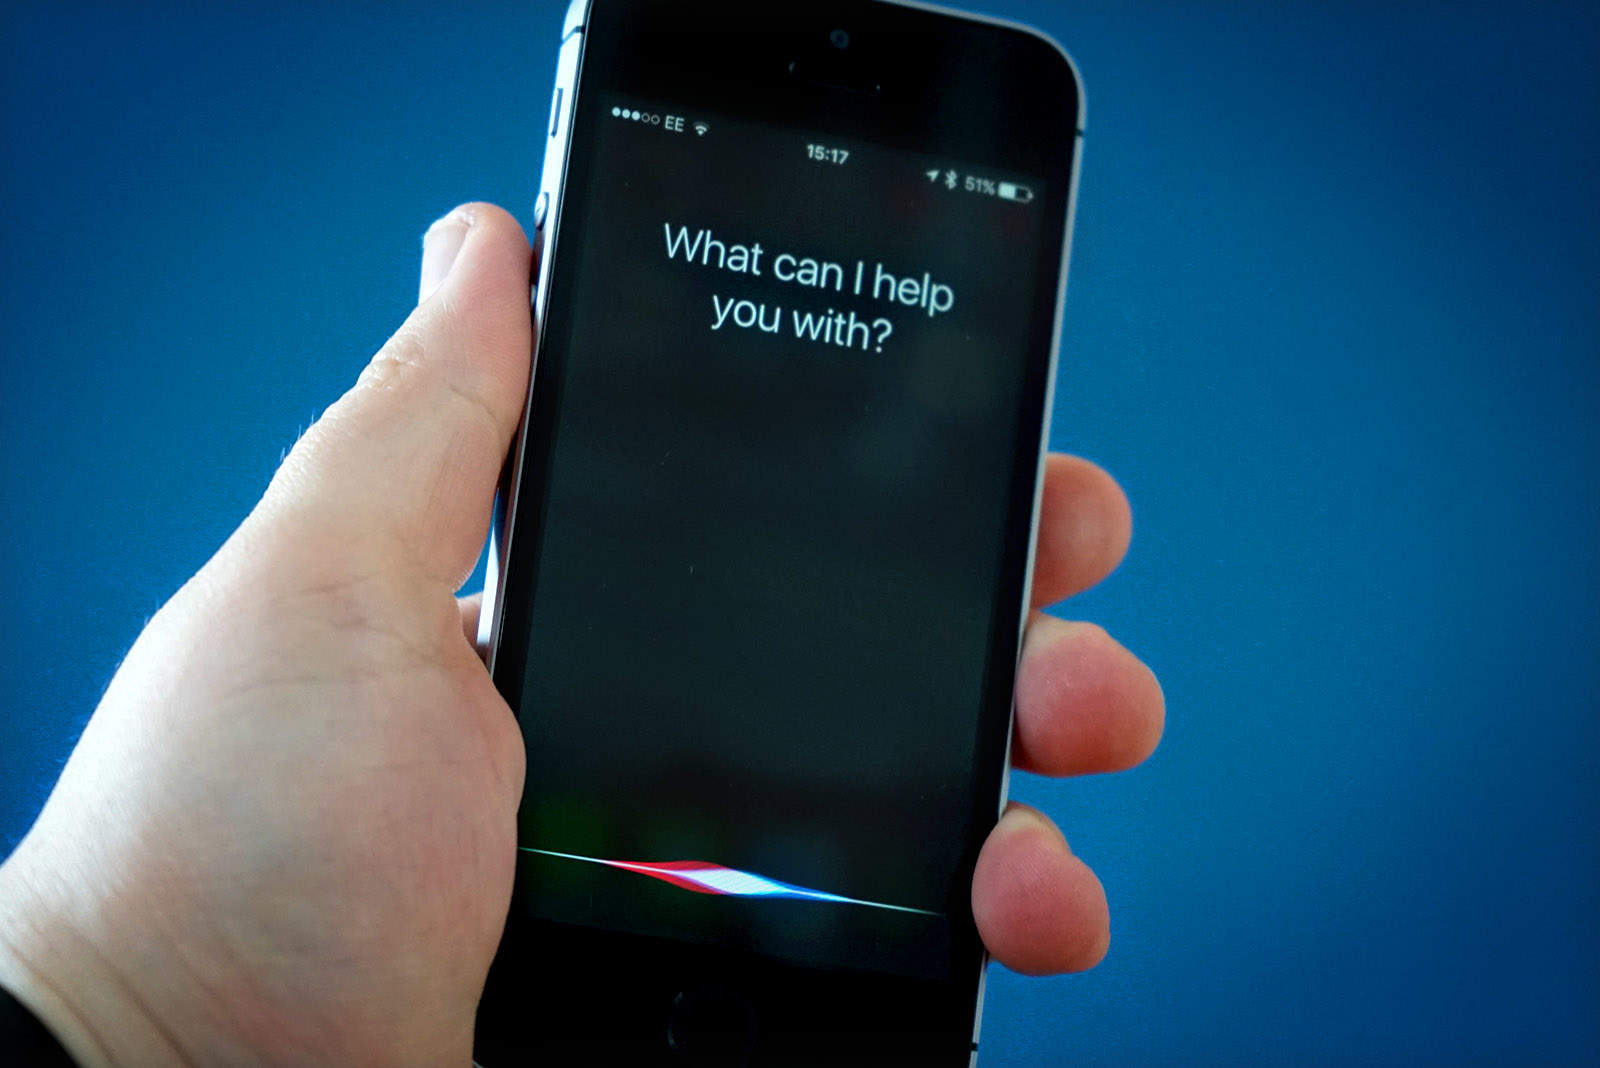 Sorry, Alexa: Siri still the most widespread AI assistant